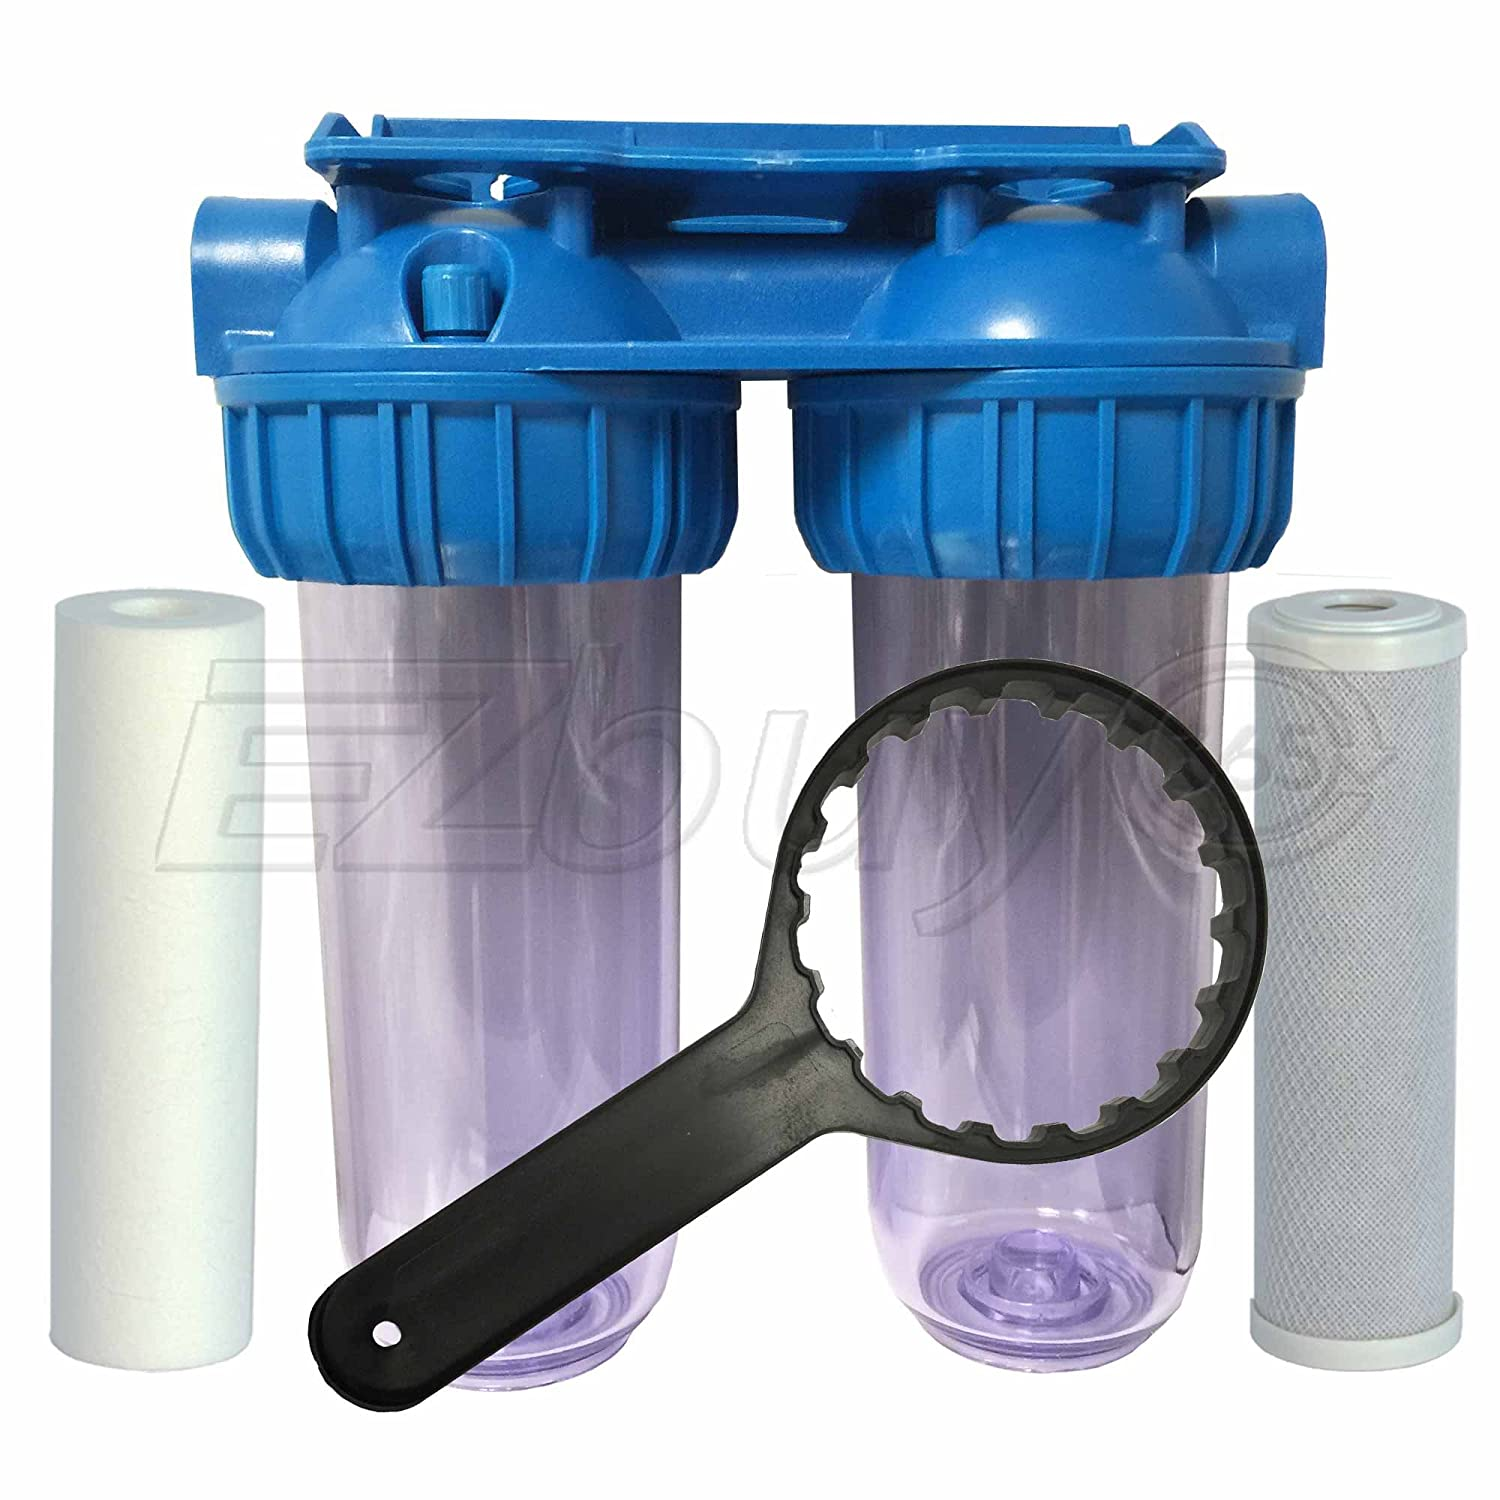 House Water Filter Dual Whole House Water Filter Purifier With Carbon Block And